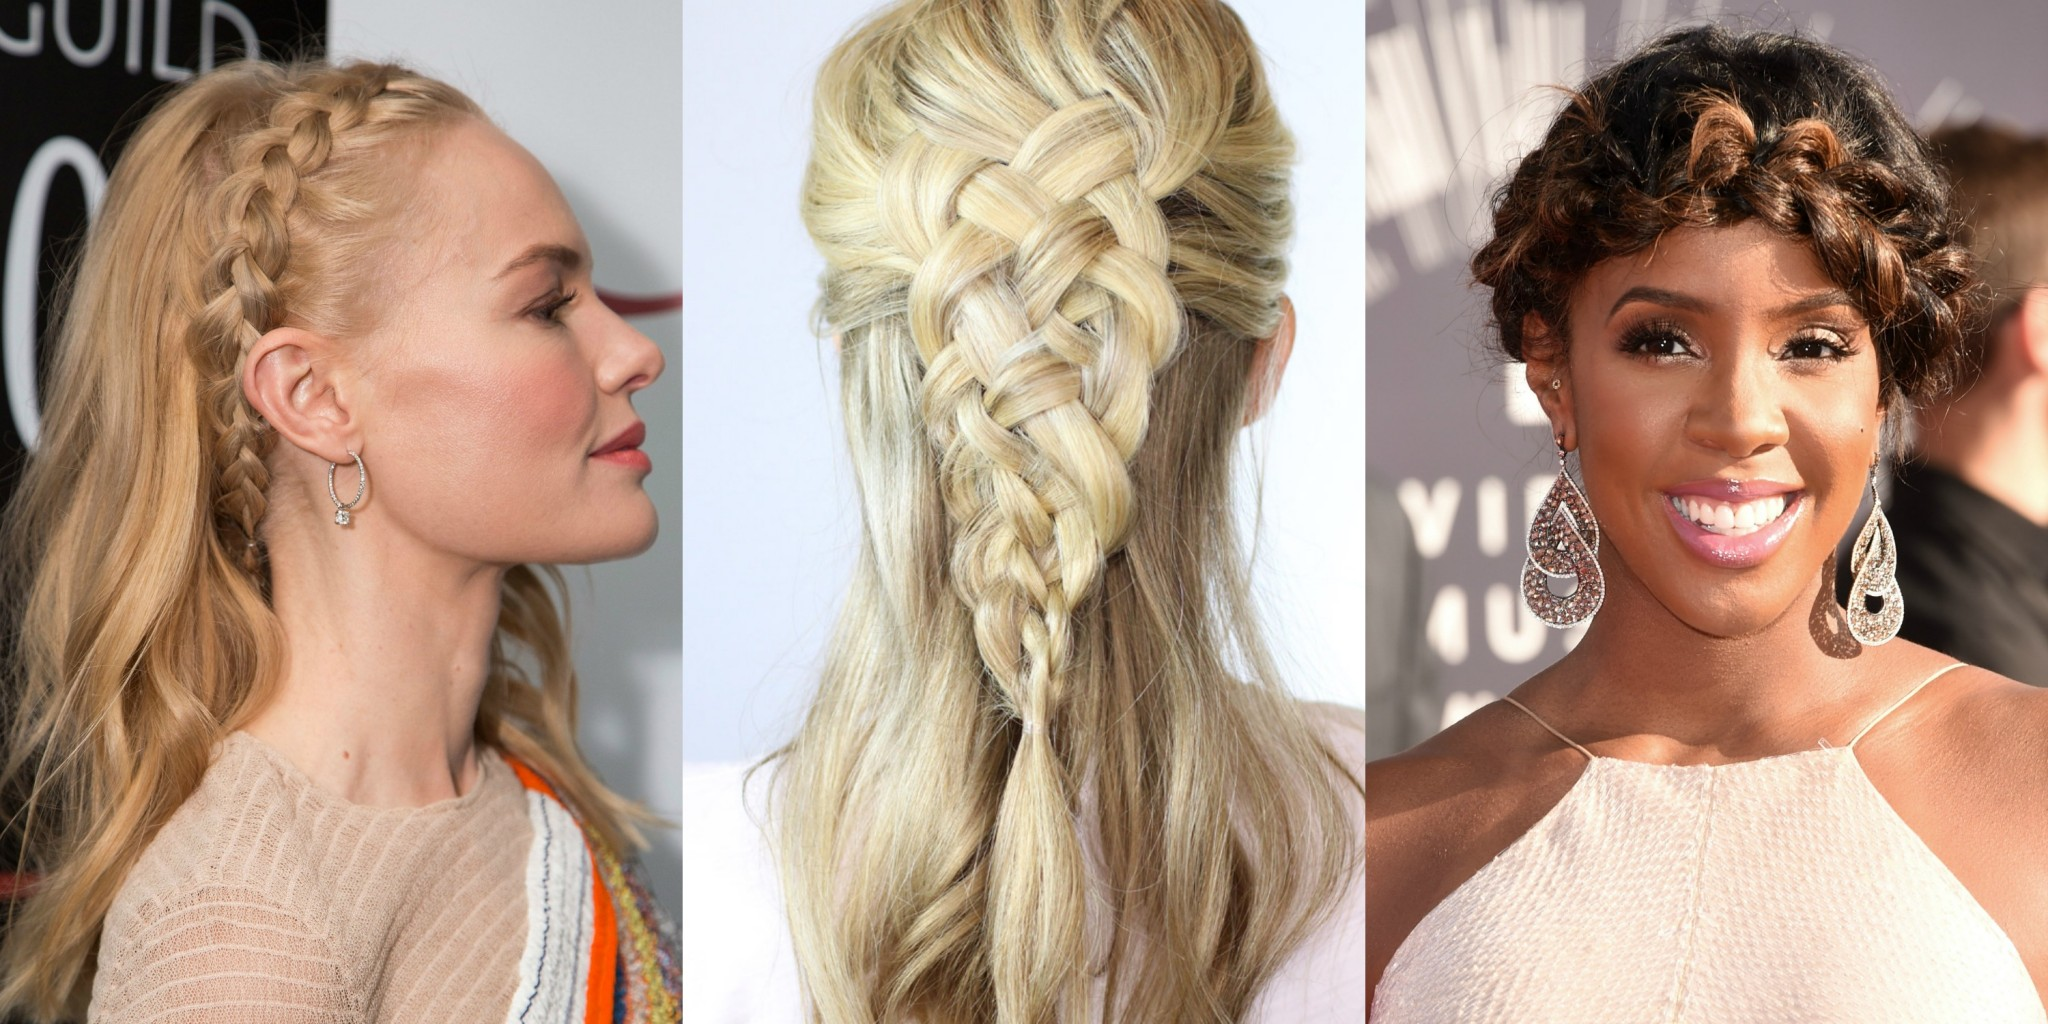 10 Breathtaking Braids You Need in Your Life Right Now 10 Breathtaking Braids You Need in Your Life Right Now new foto